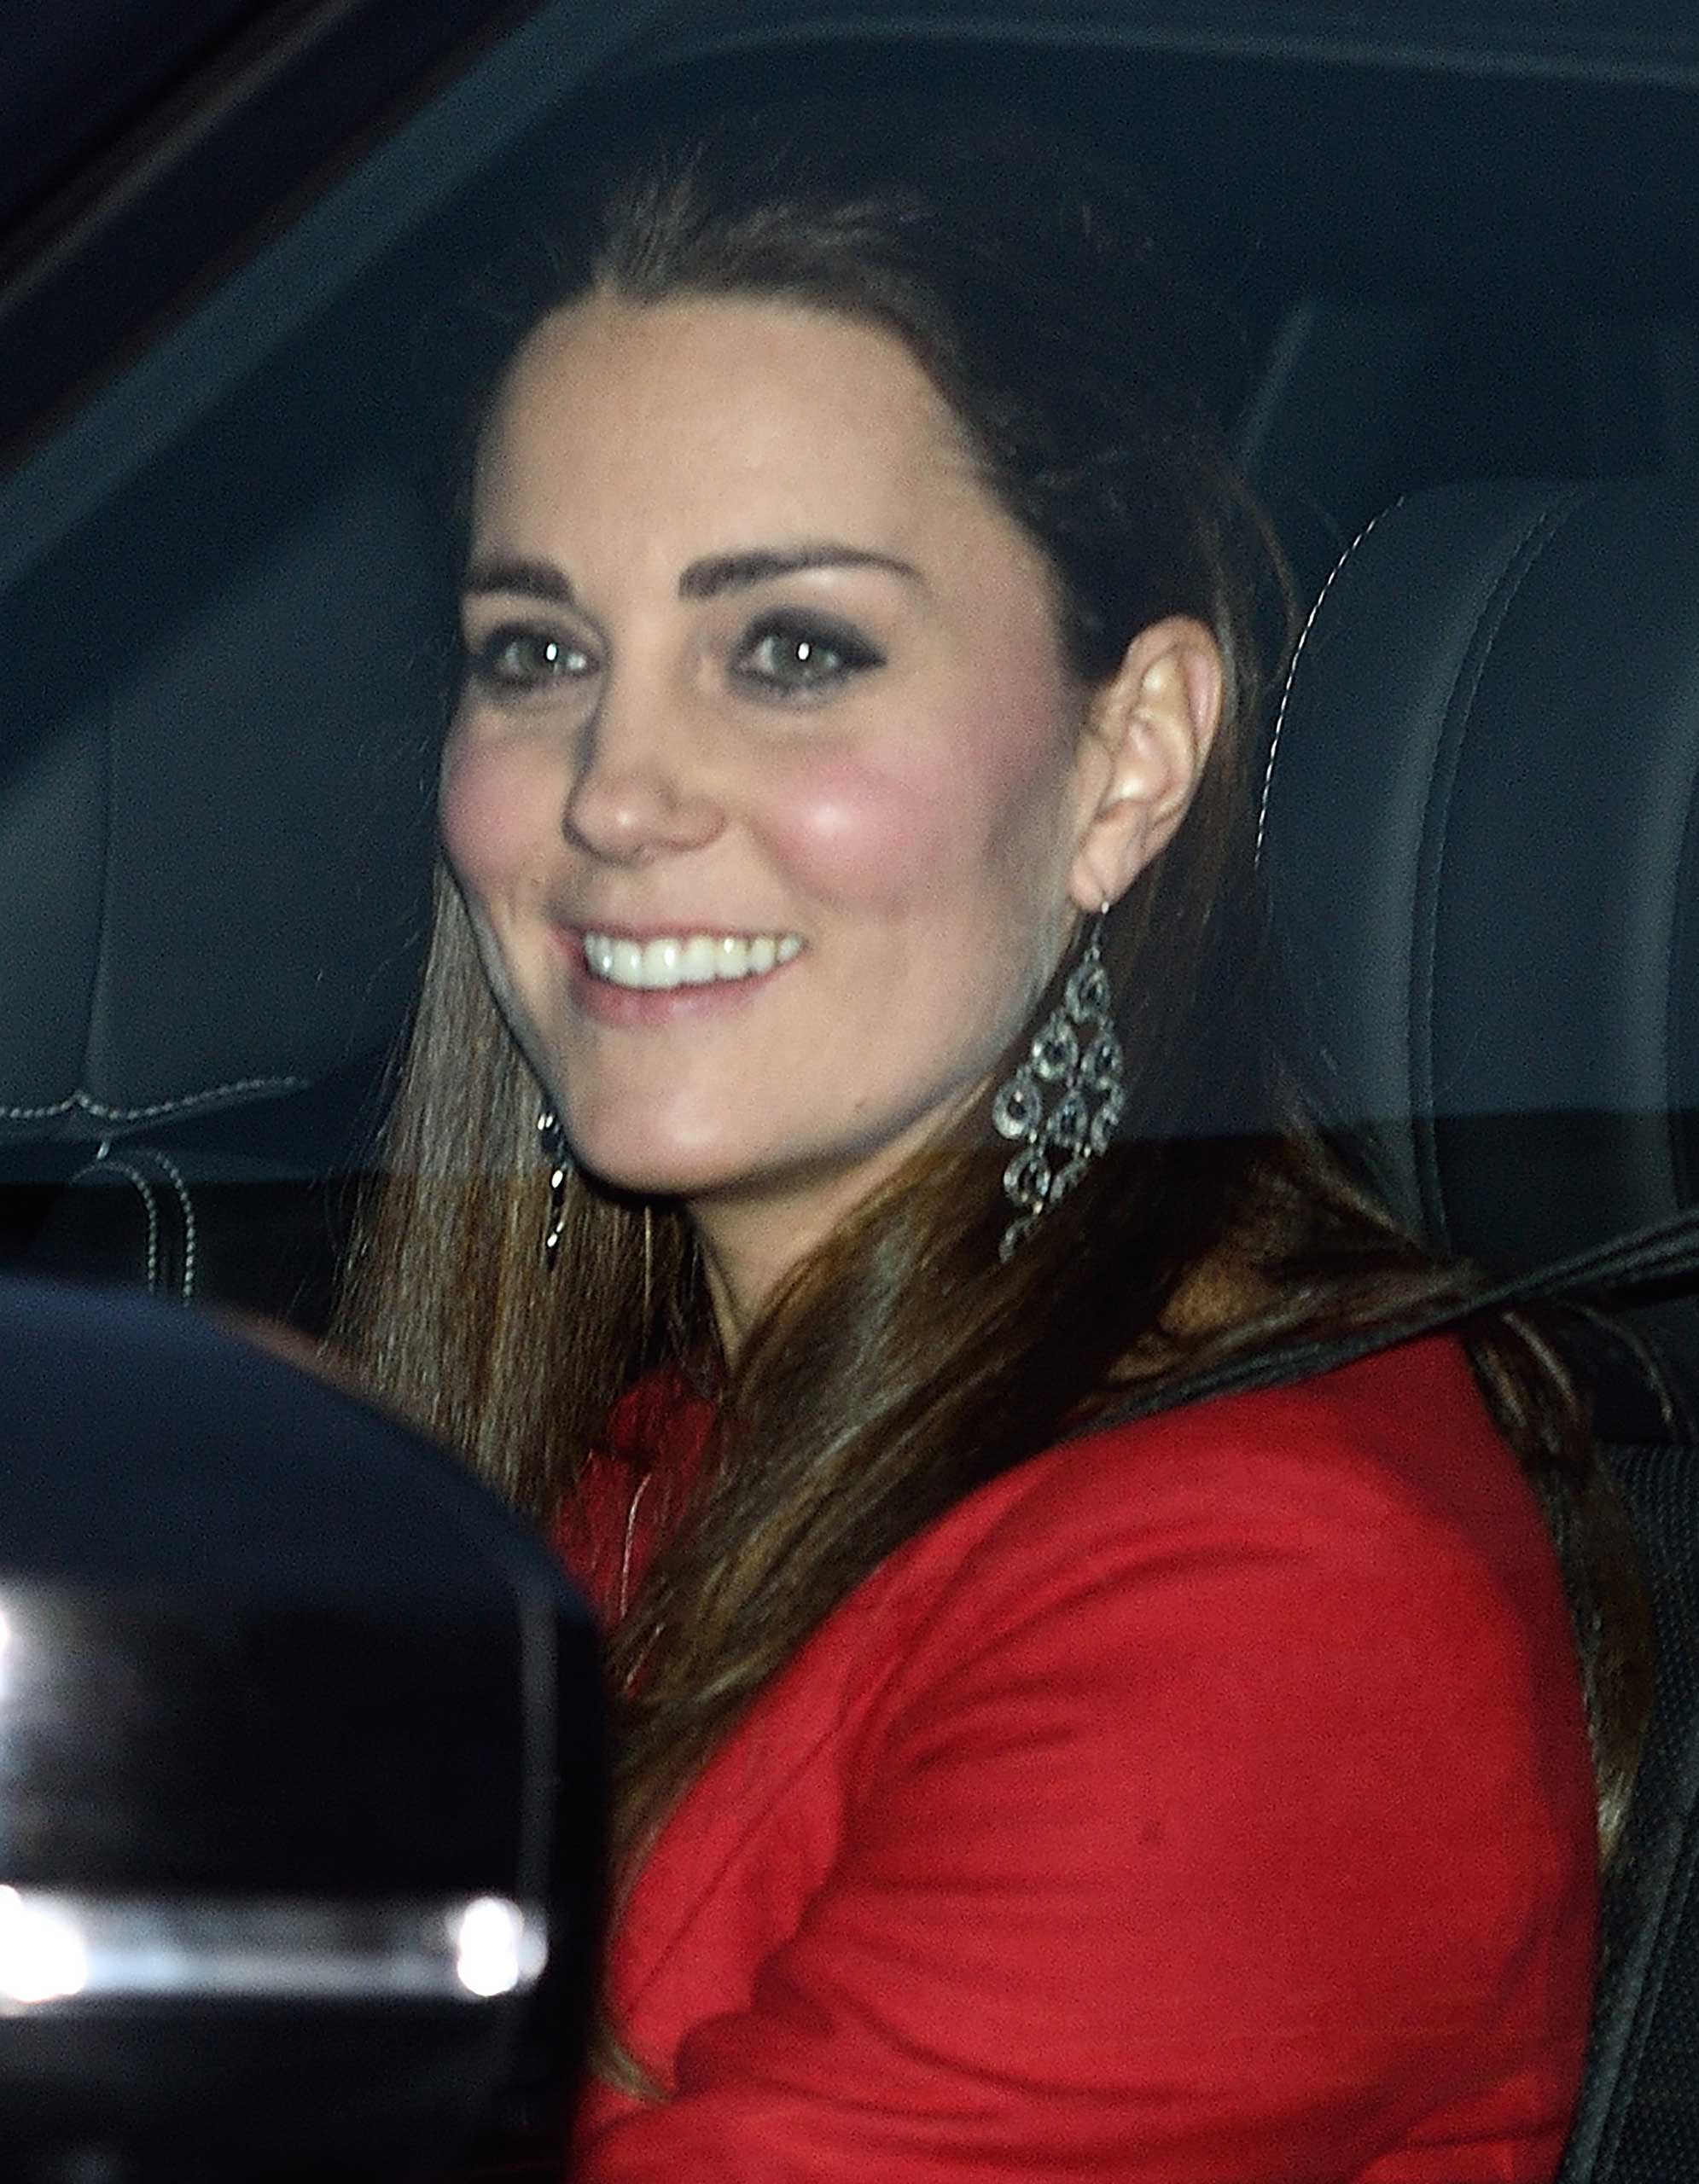 Catherine, Duchess of Cambridge departs from the Buckingham Palace Pre-Christmas Lunch at Buckingham Palace in London on Dec. 17, 2014.